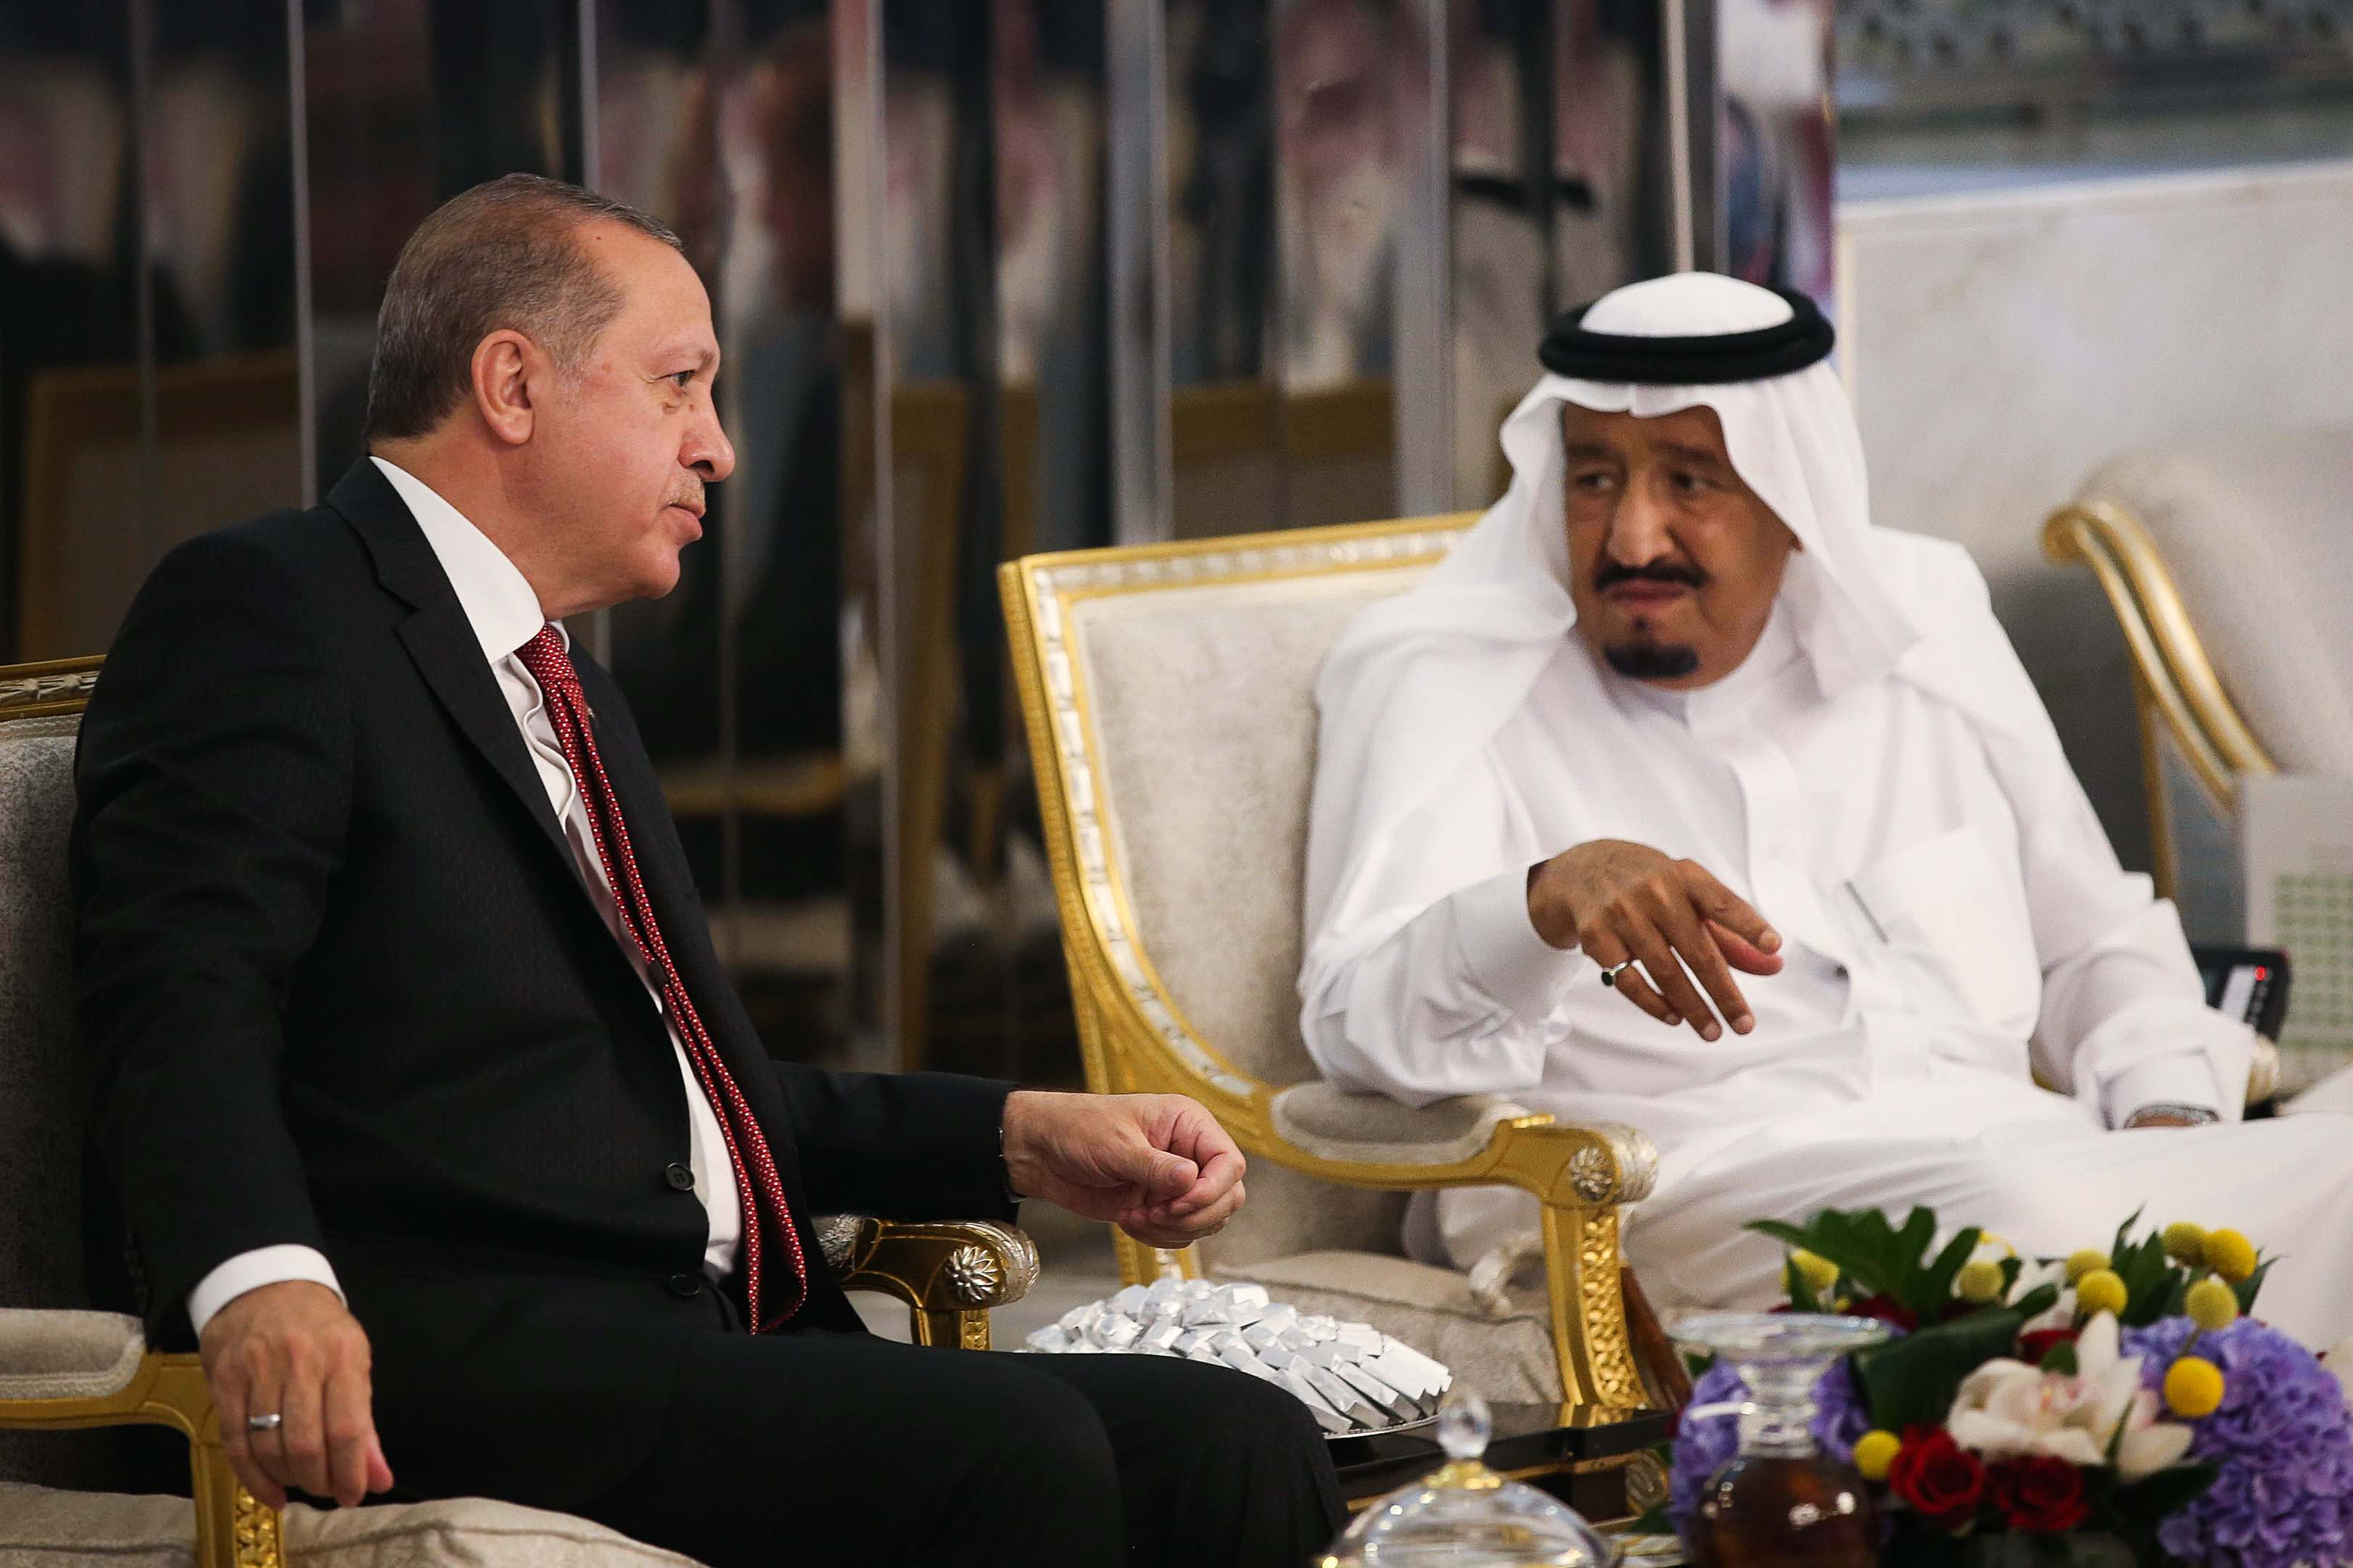 Turkey seeking to repair Saudi relations with high-level contacts